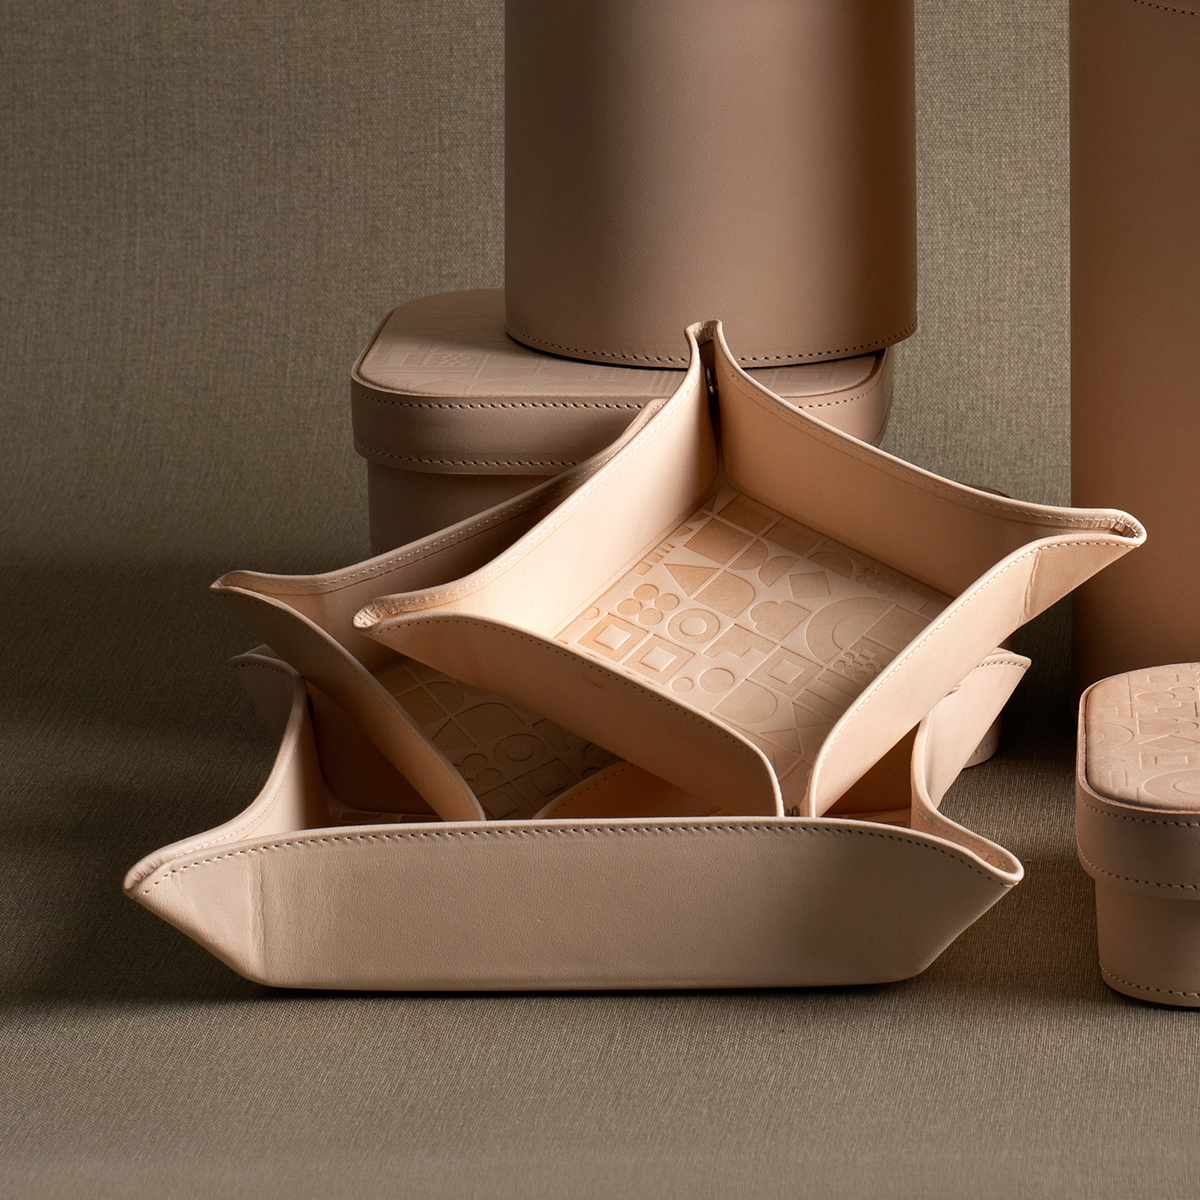 palmgrens-embossed-trays-natural-1200